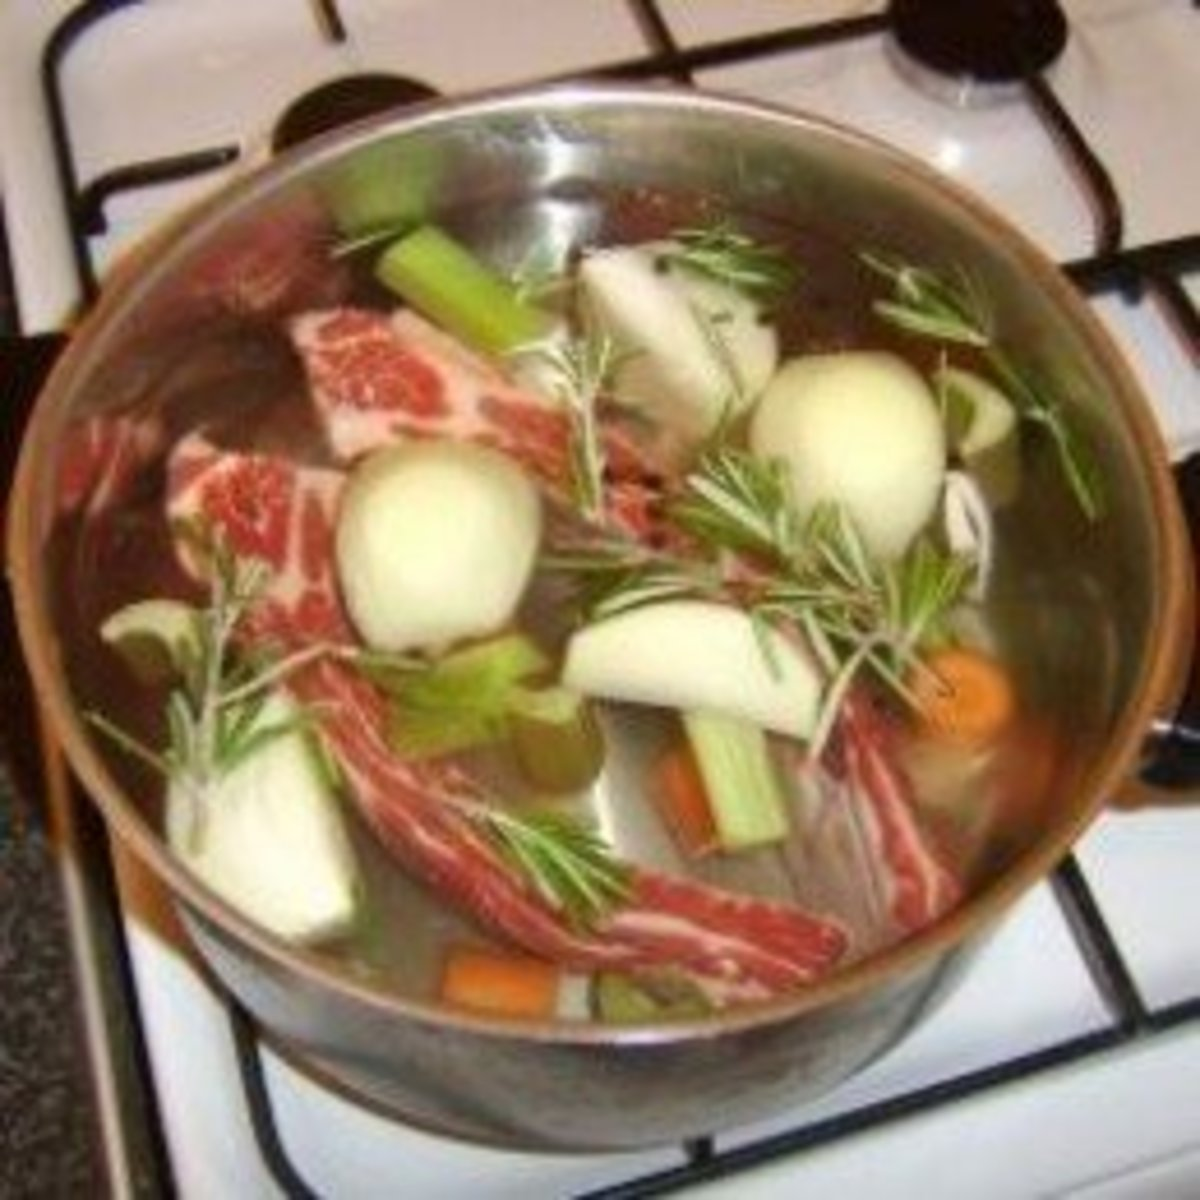 Starting to prepare a simple beef stock